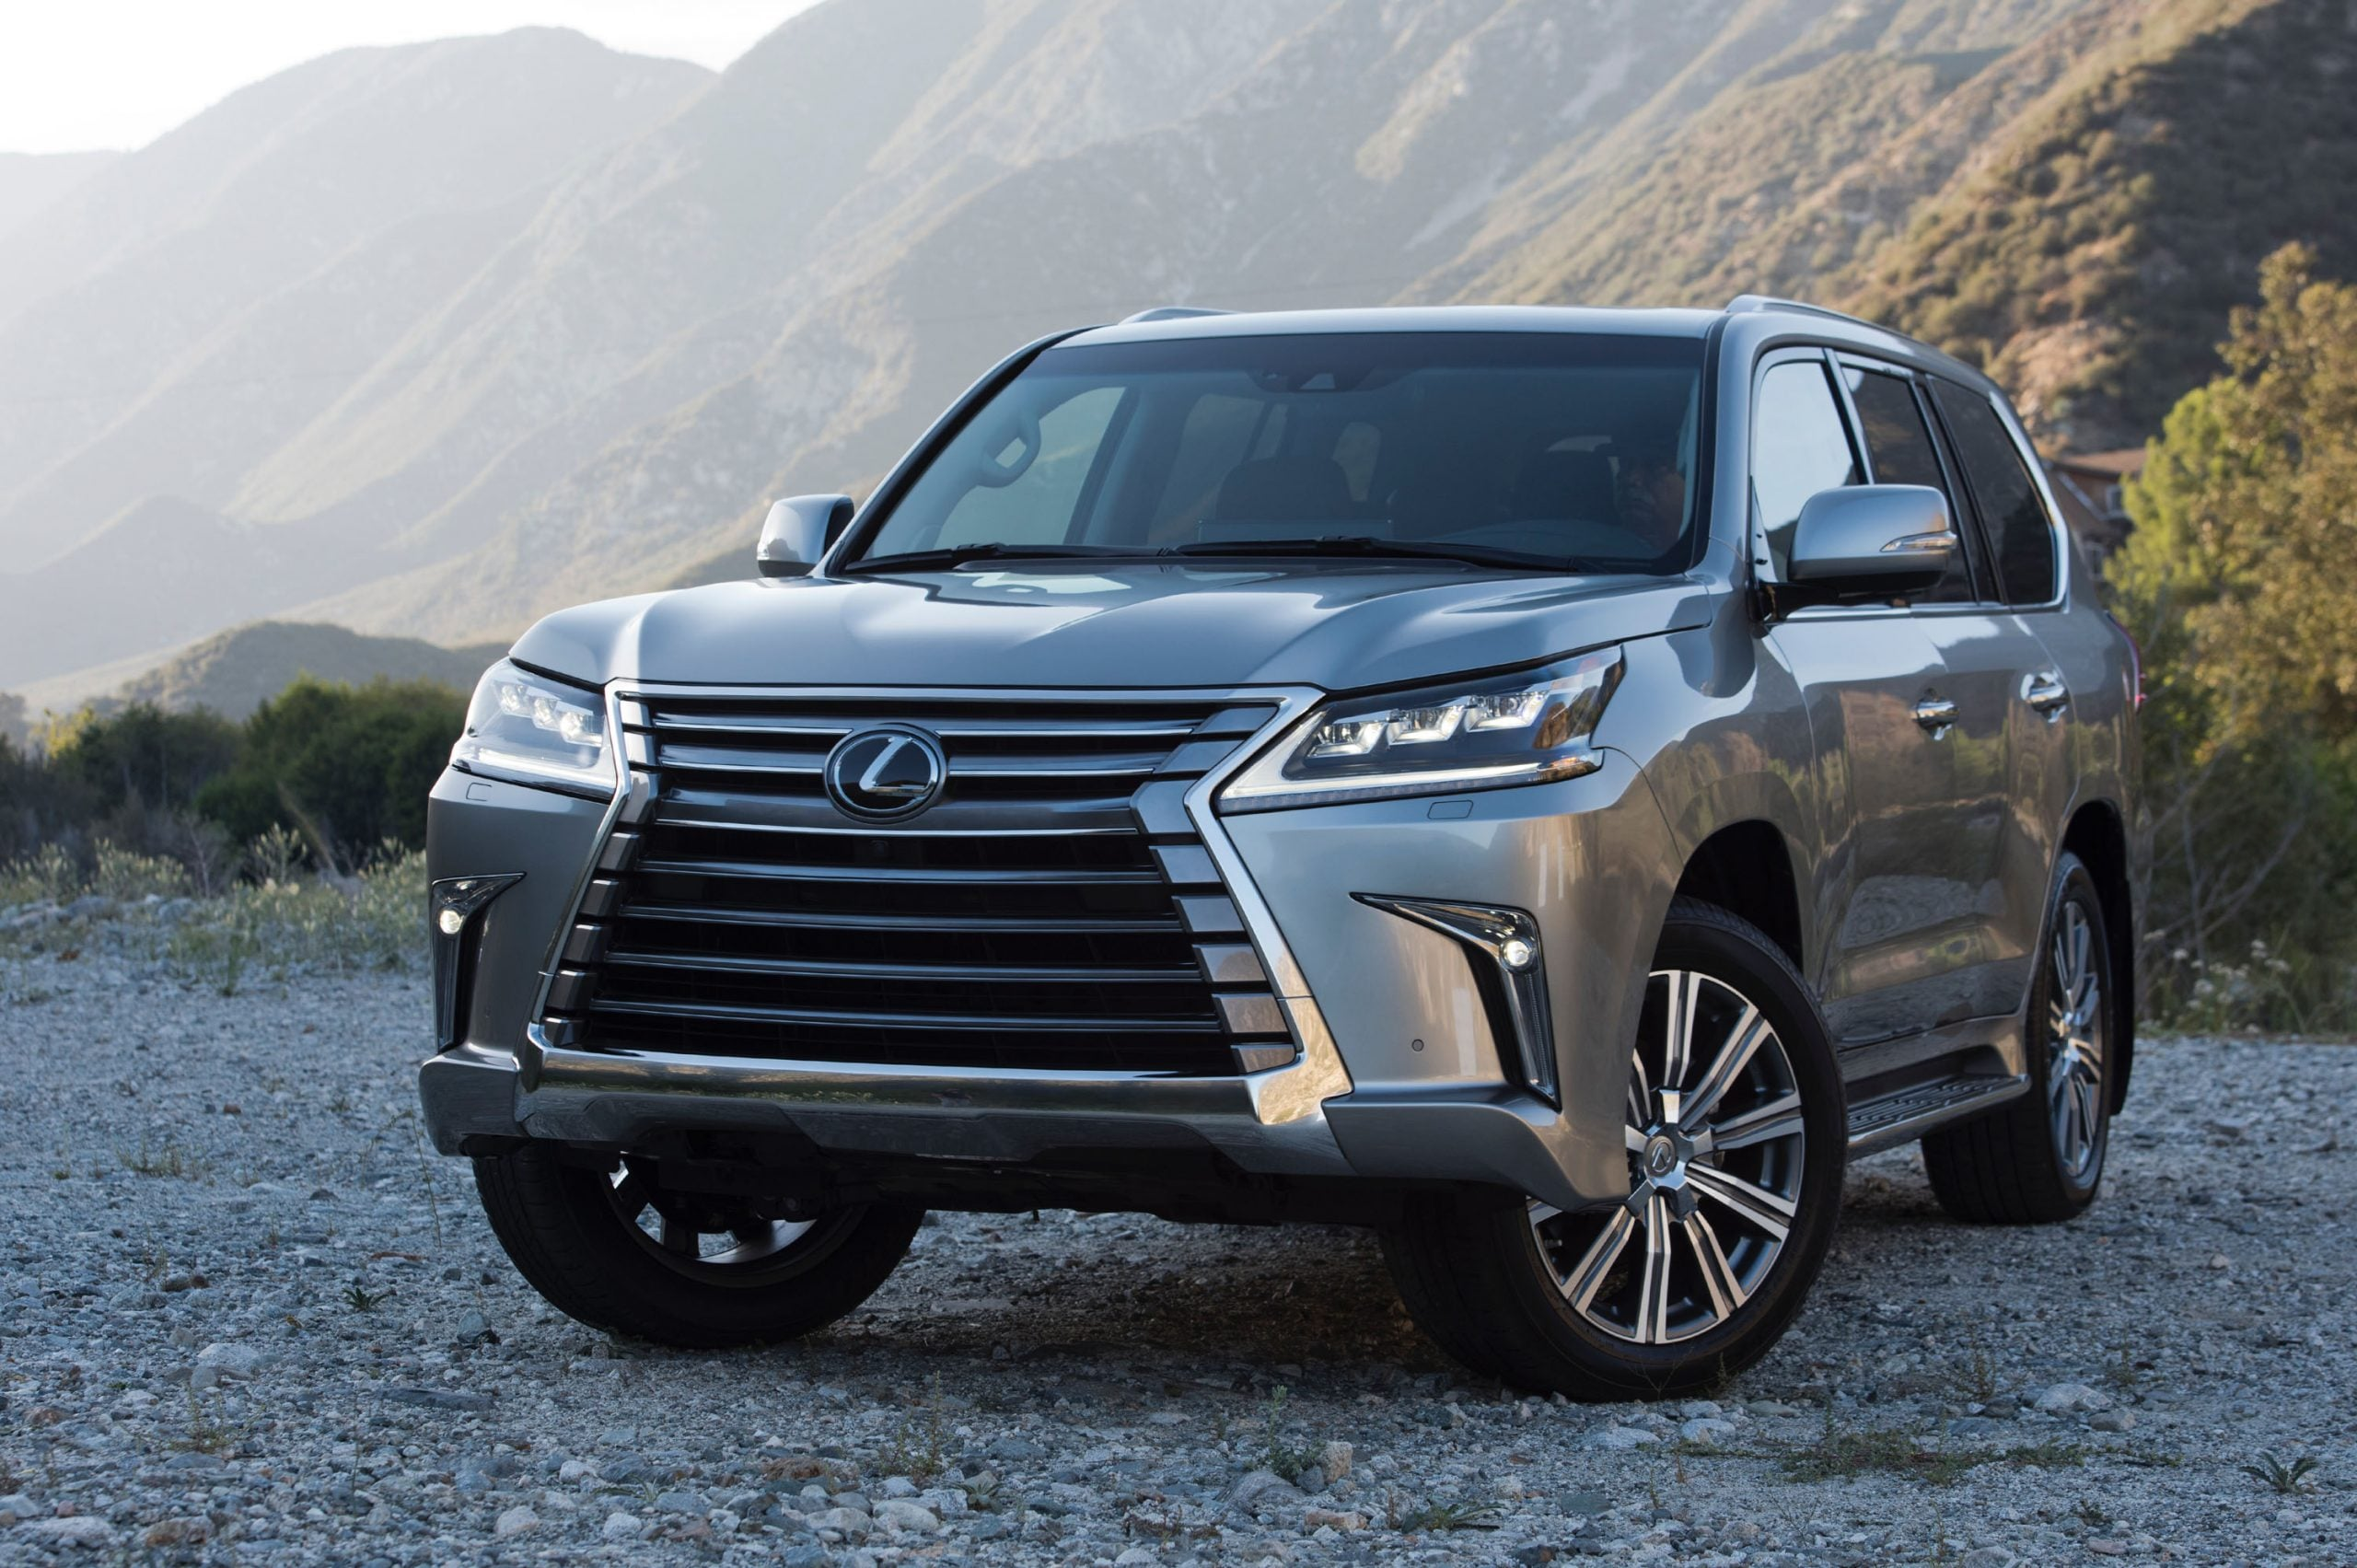 Impressive Excess The 2020 Lexus Lx 570 Review The North State Journal